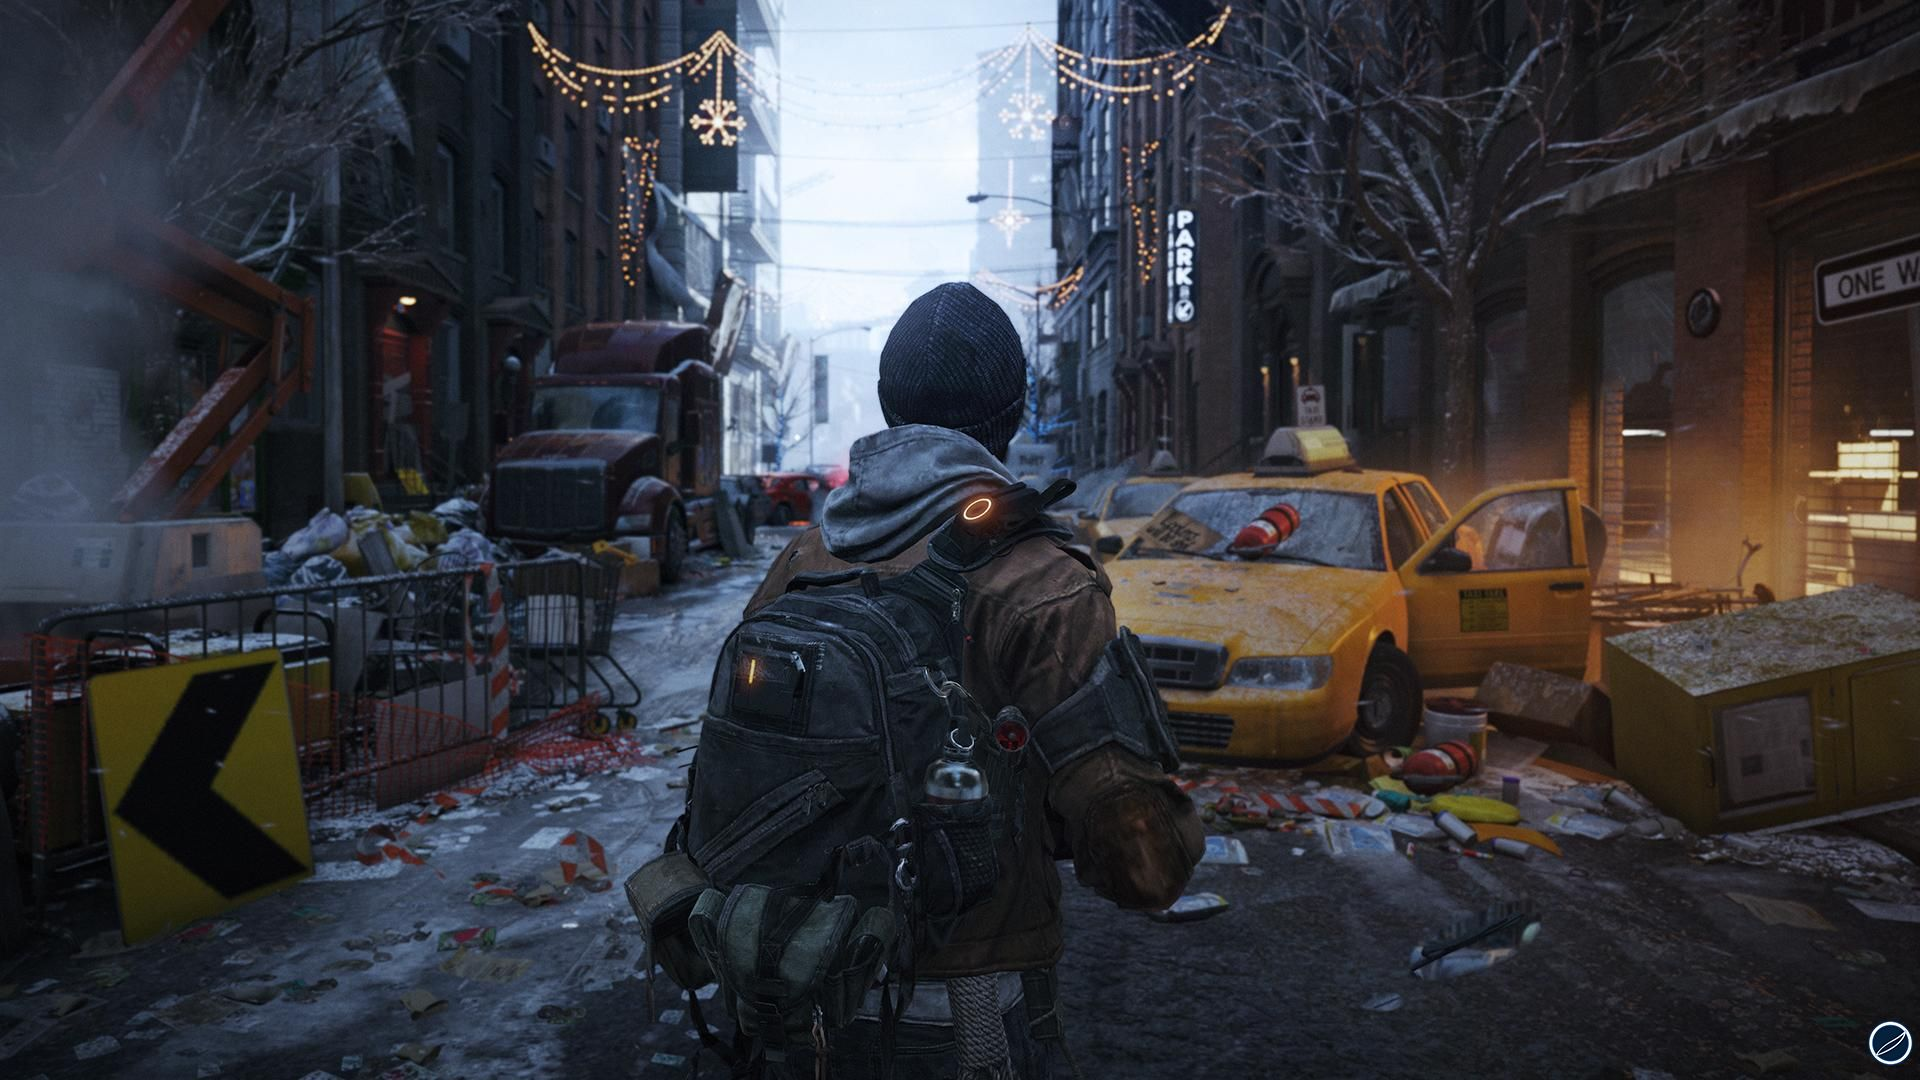 tom-clancy-s-the-division_PS4_w_9436.jpg